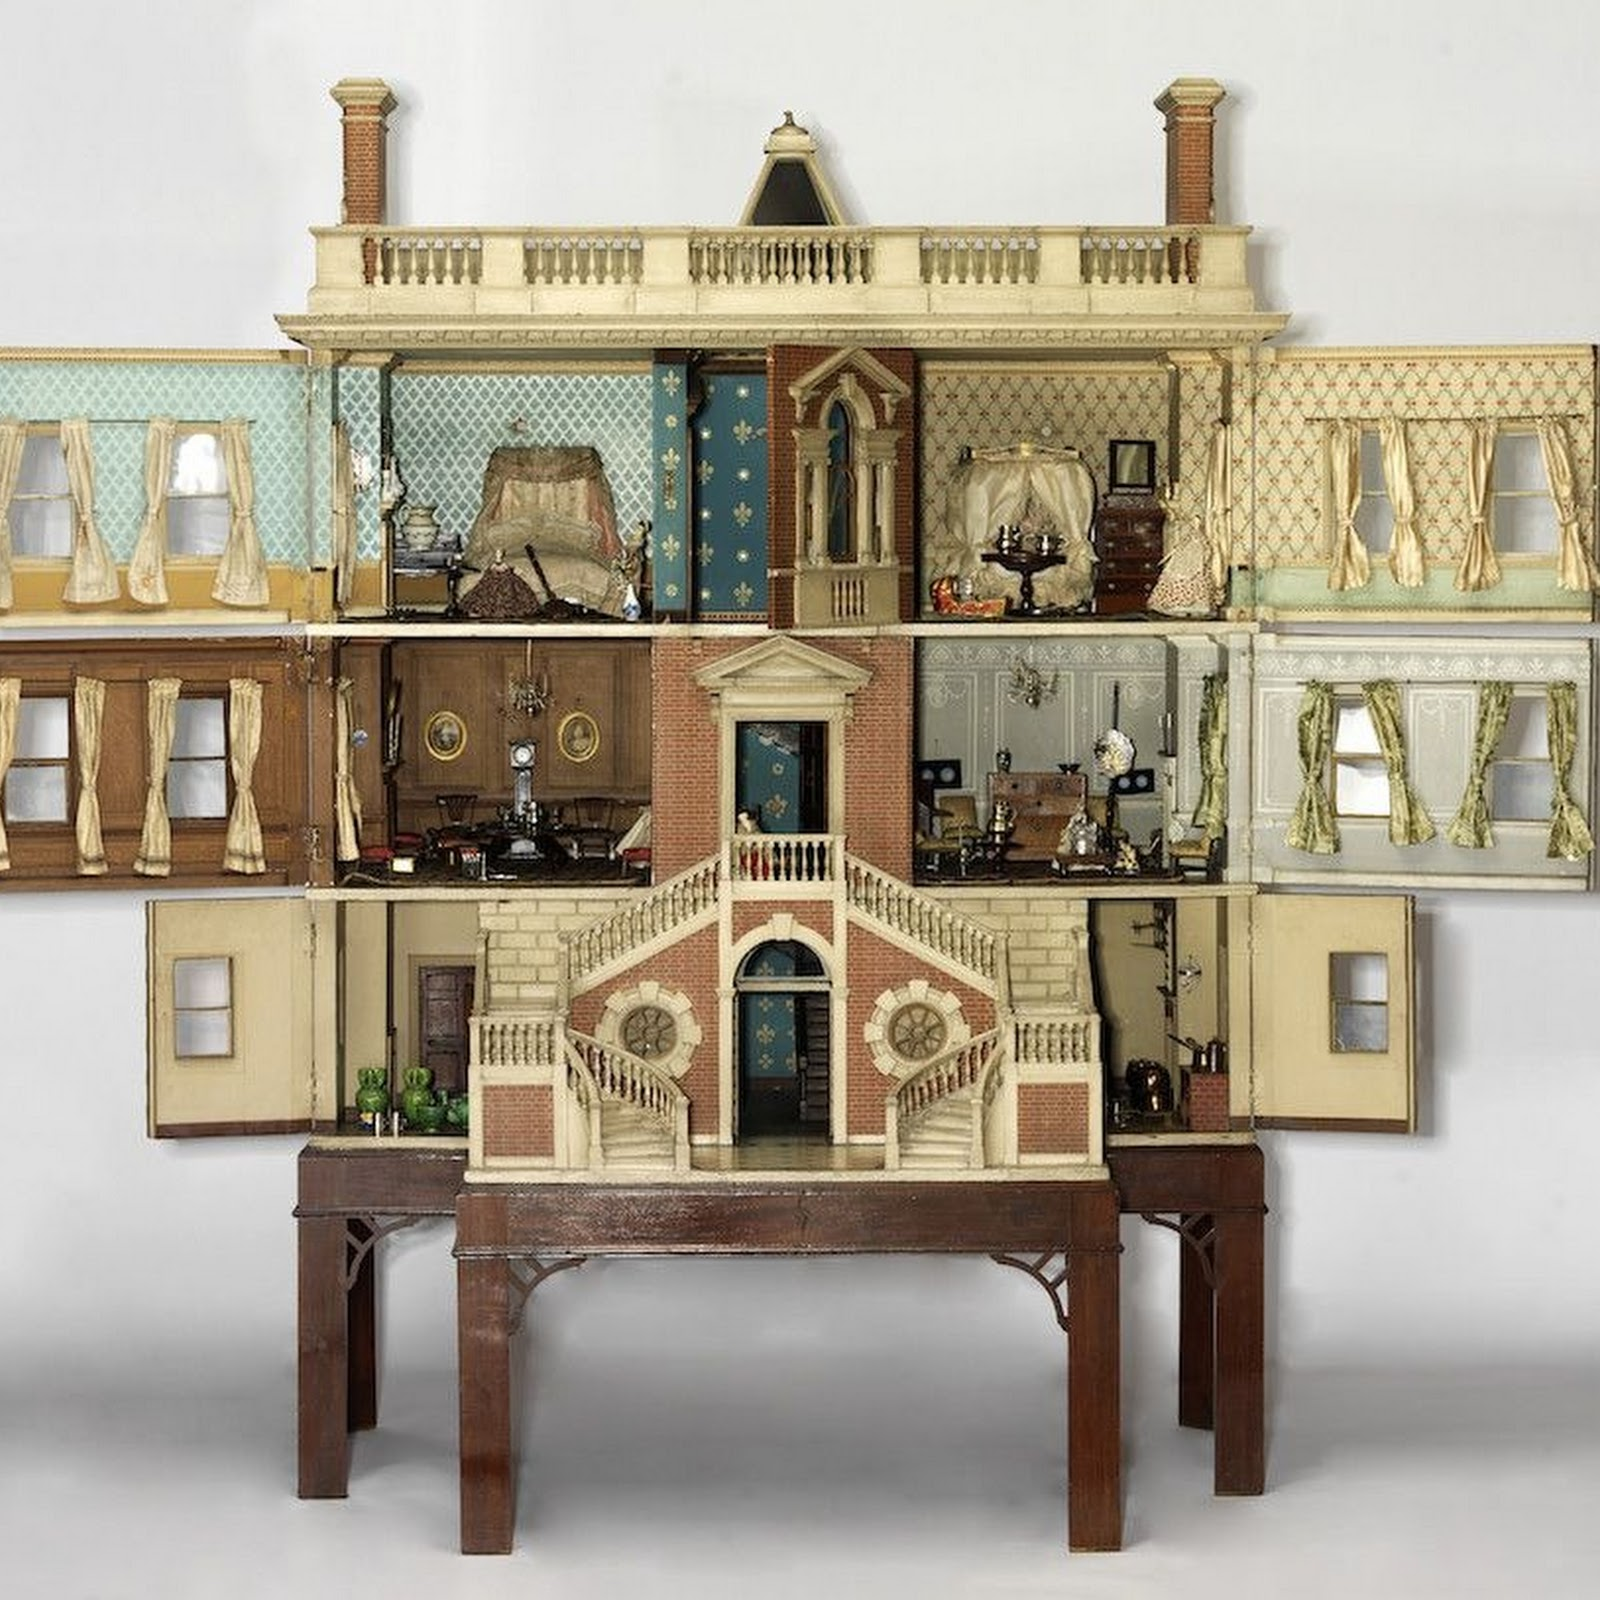 Historic Dollhouses Capture 300 Years of British Domestic Life